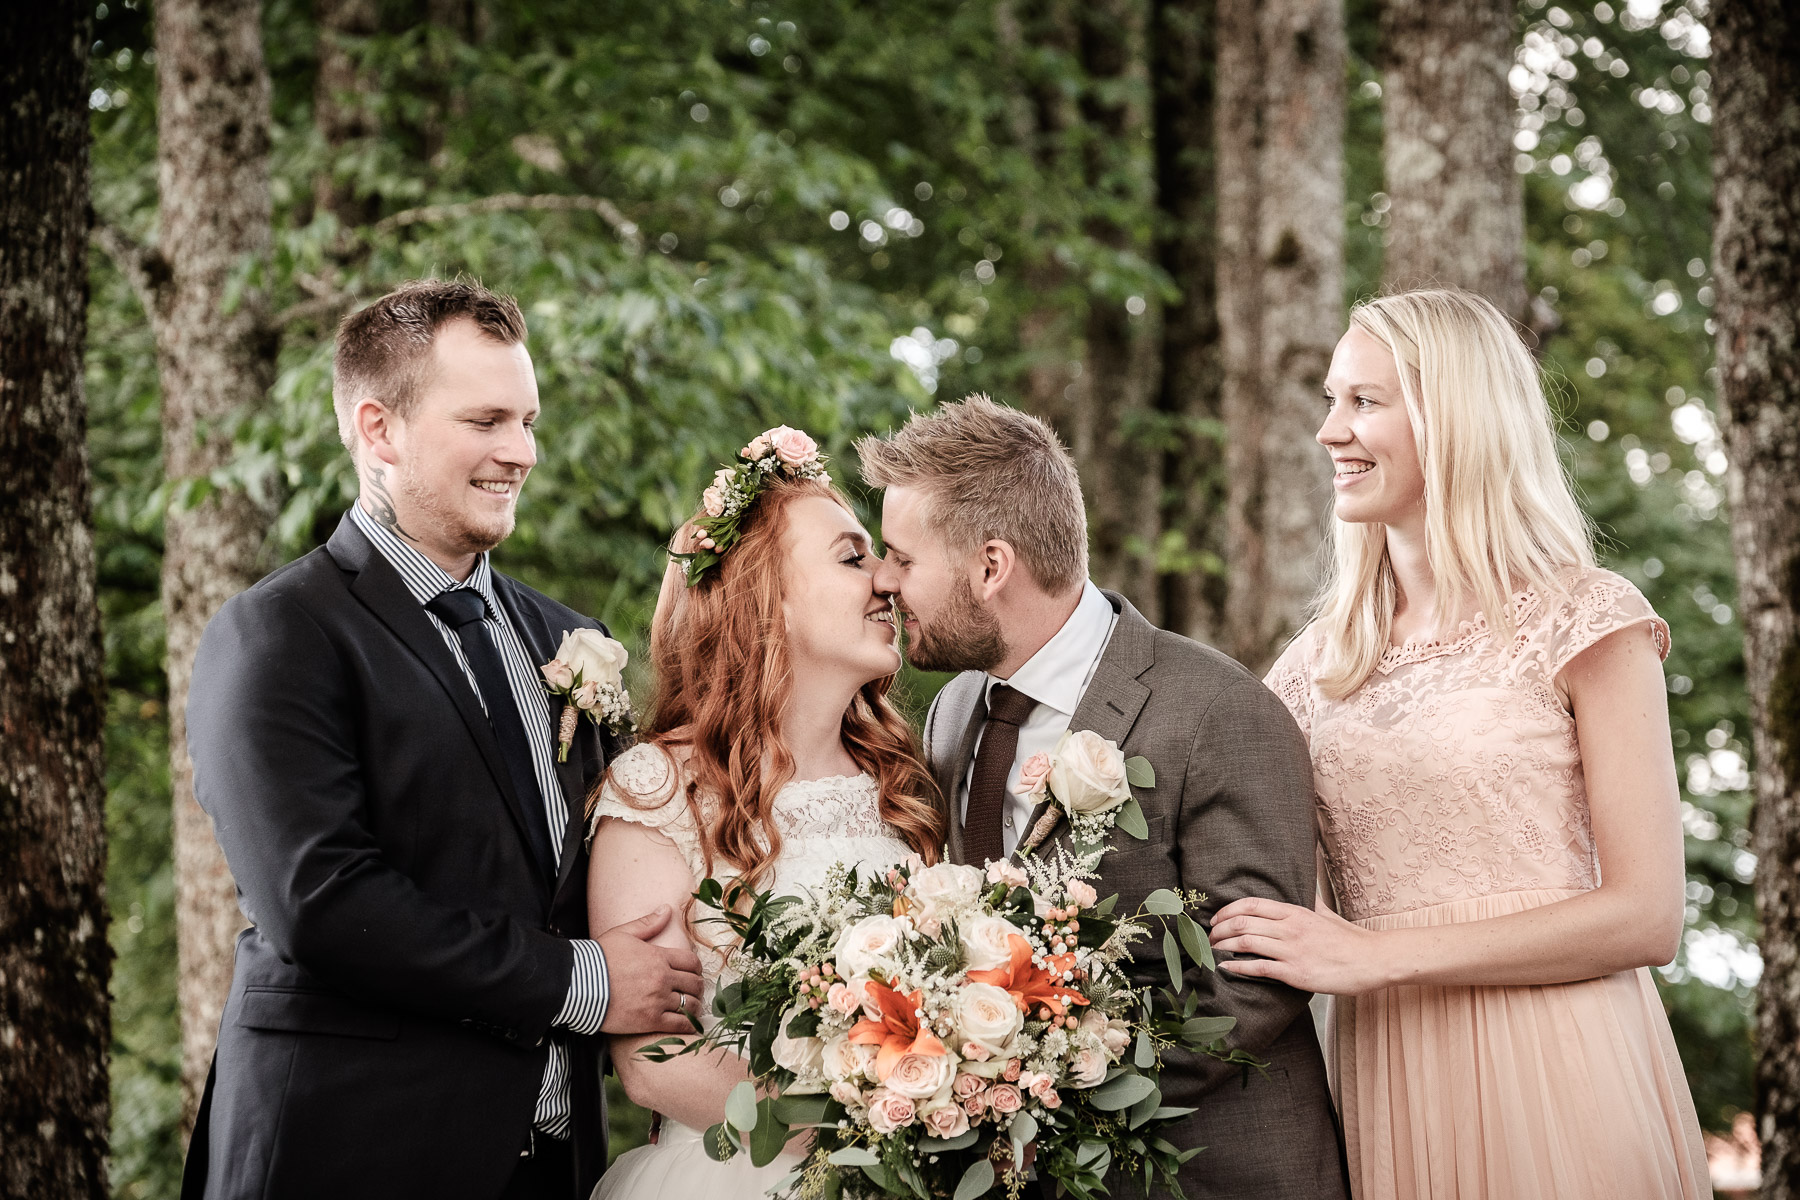 Click to enlarge image elise-christoffer-eidsvoll-ottossonphoto-1026.jpg